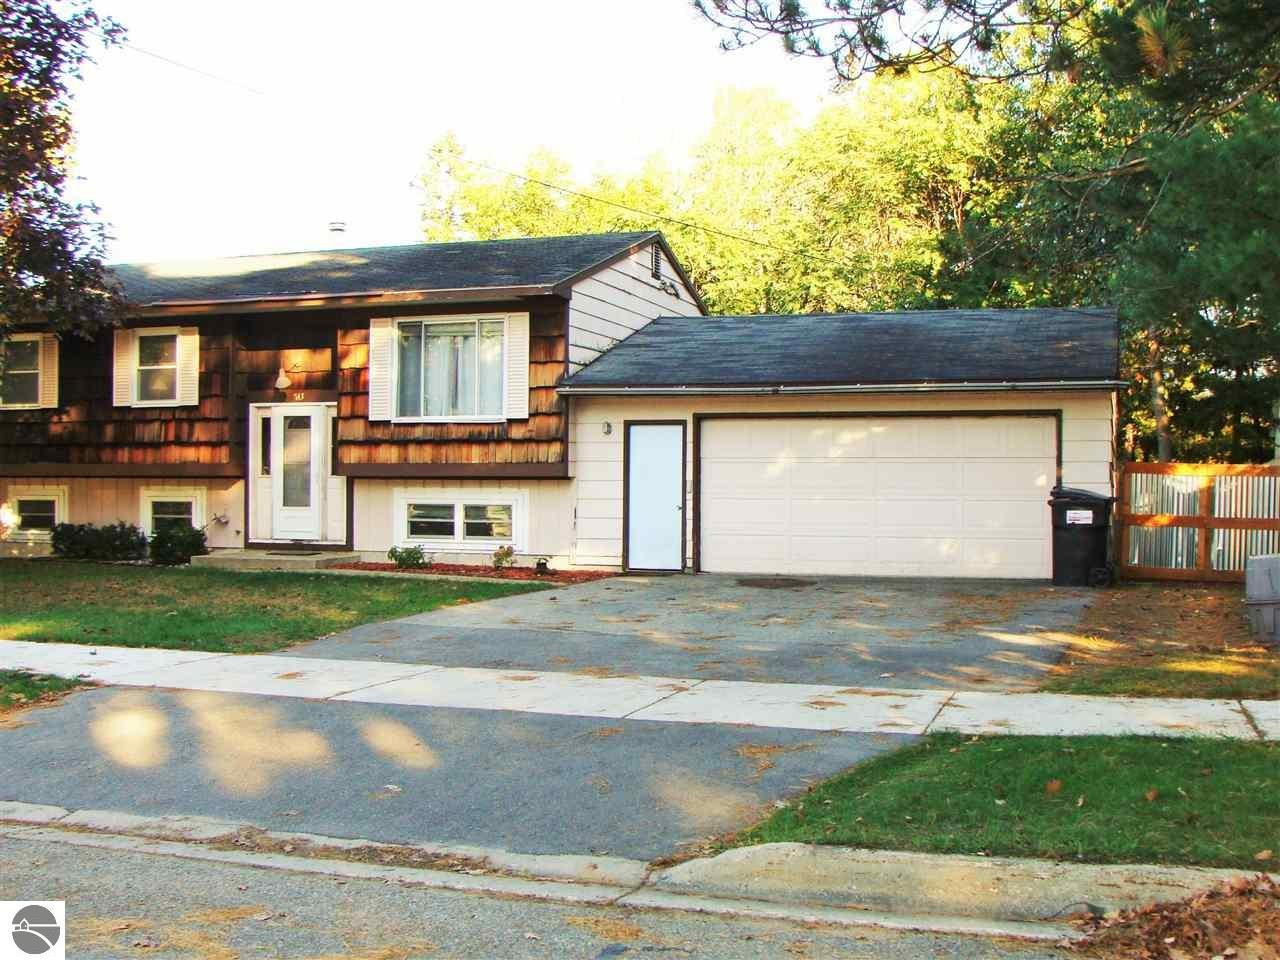 4-Bedroom House In Traverse Heights